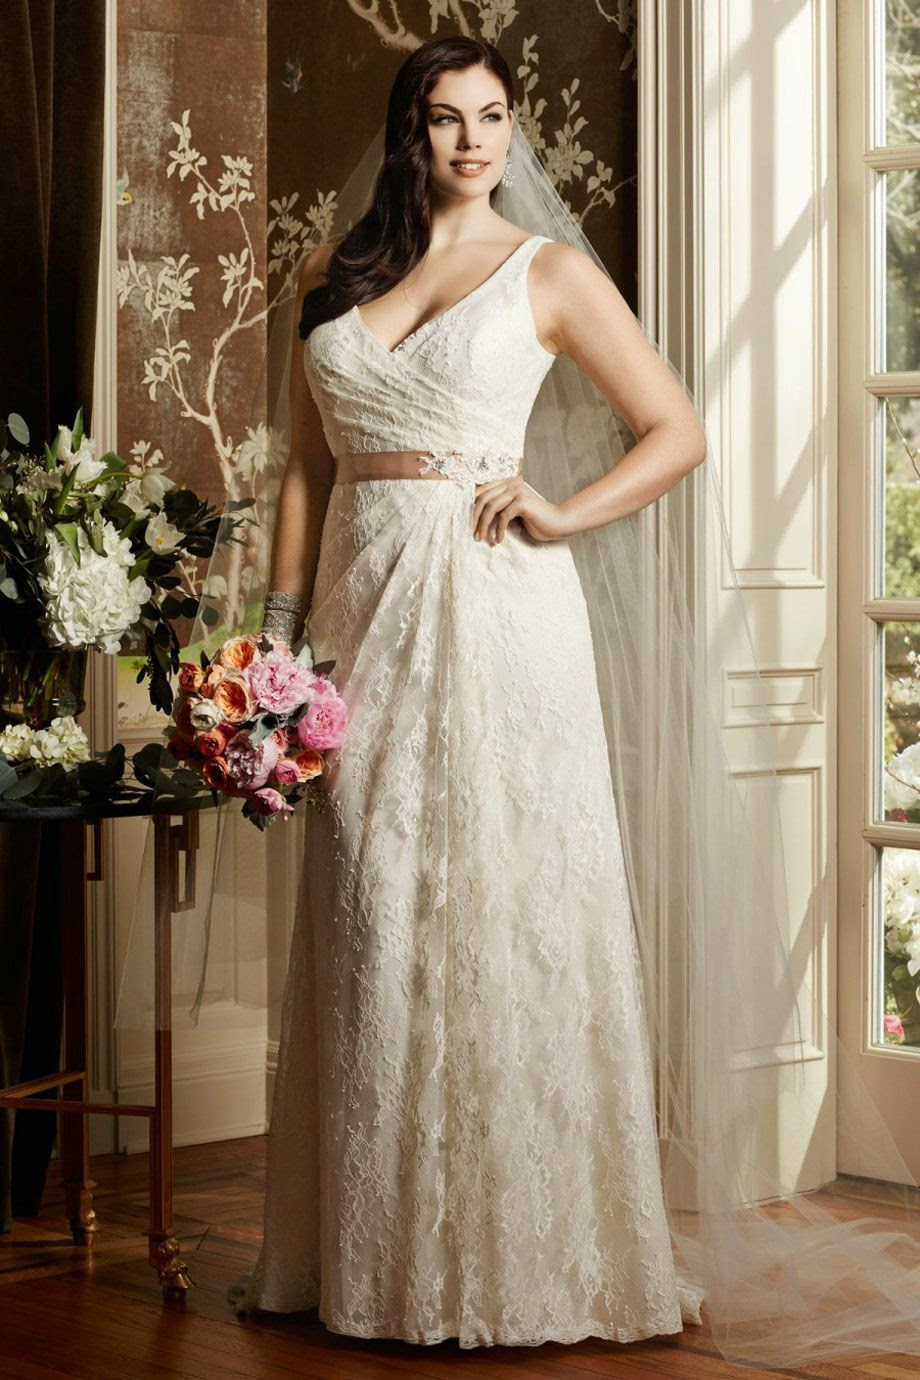 Dorable Wtoo Olivia Gown Crest - Wedding and flowers ispiration ...